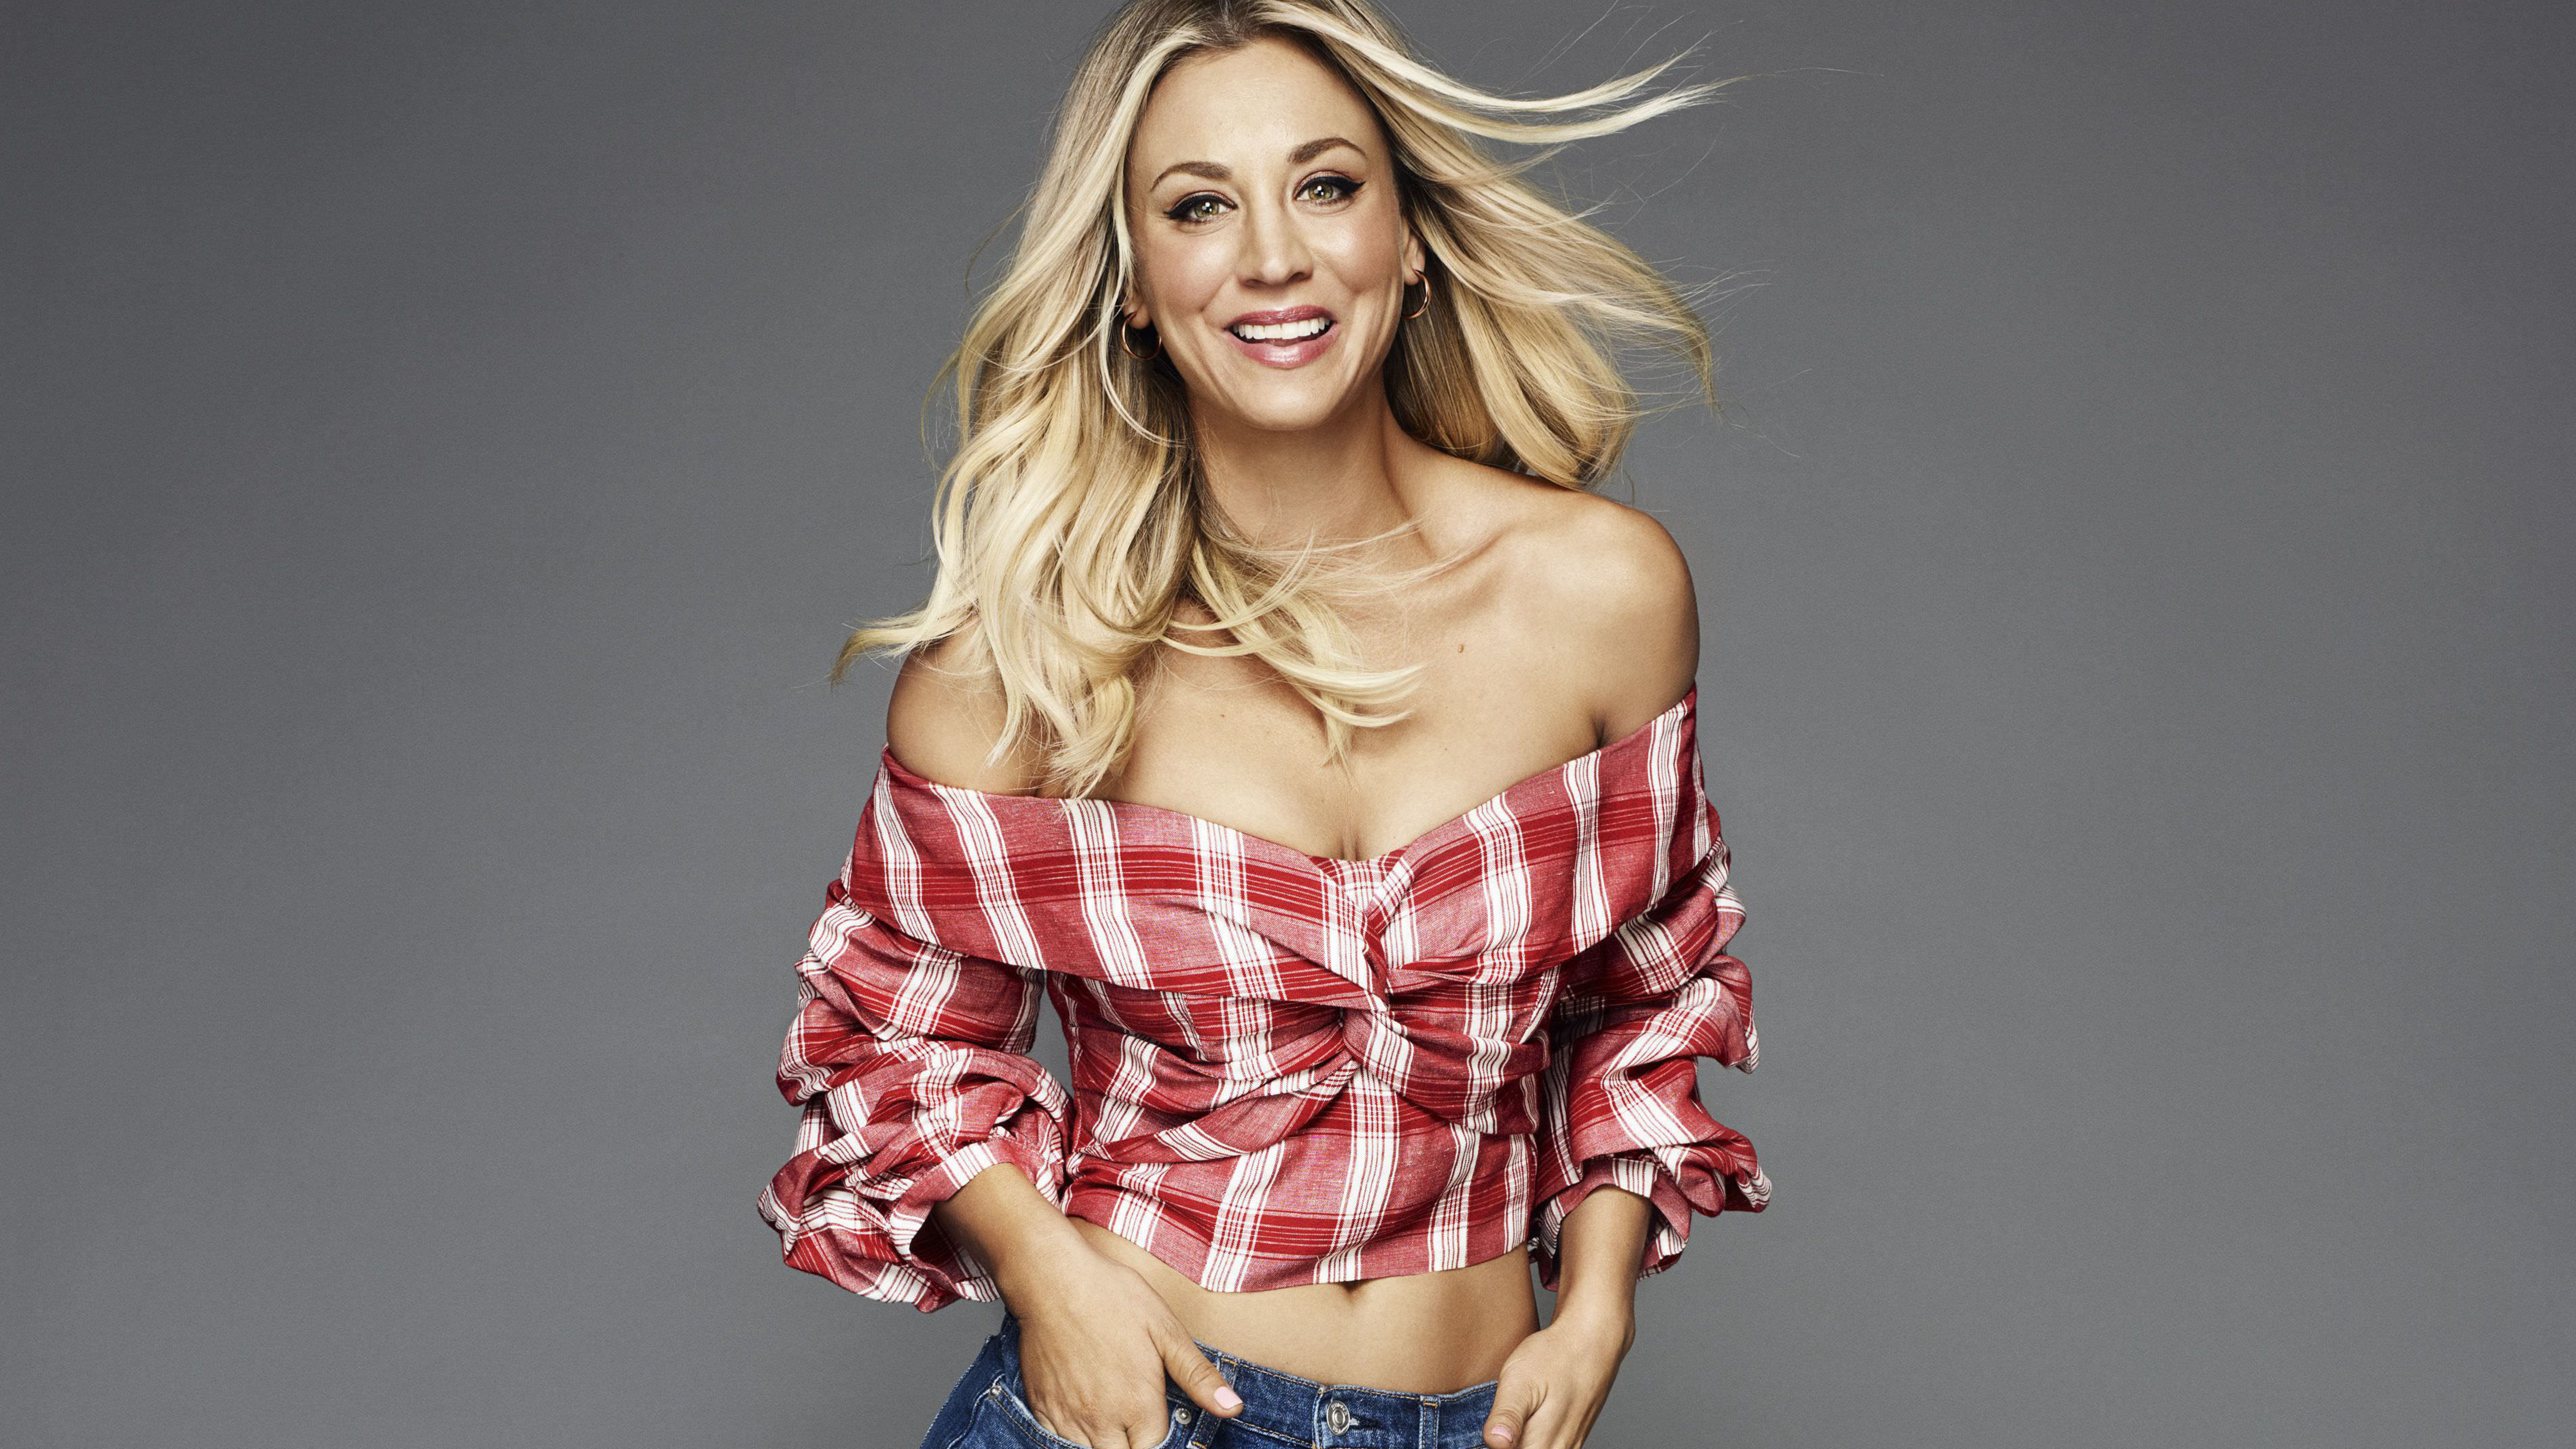 2018 Kaley Cuoco, Hd 4K Wallpaper-3544